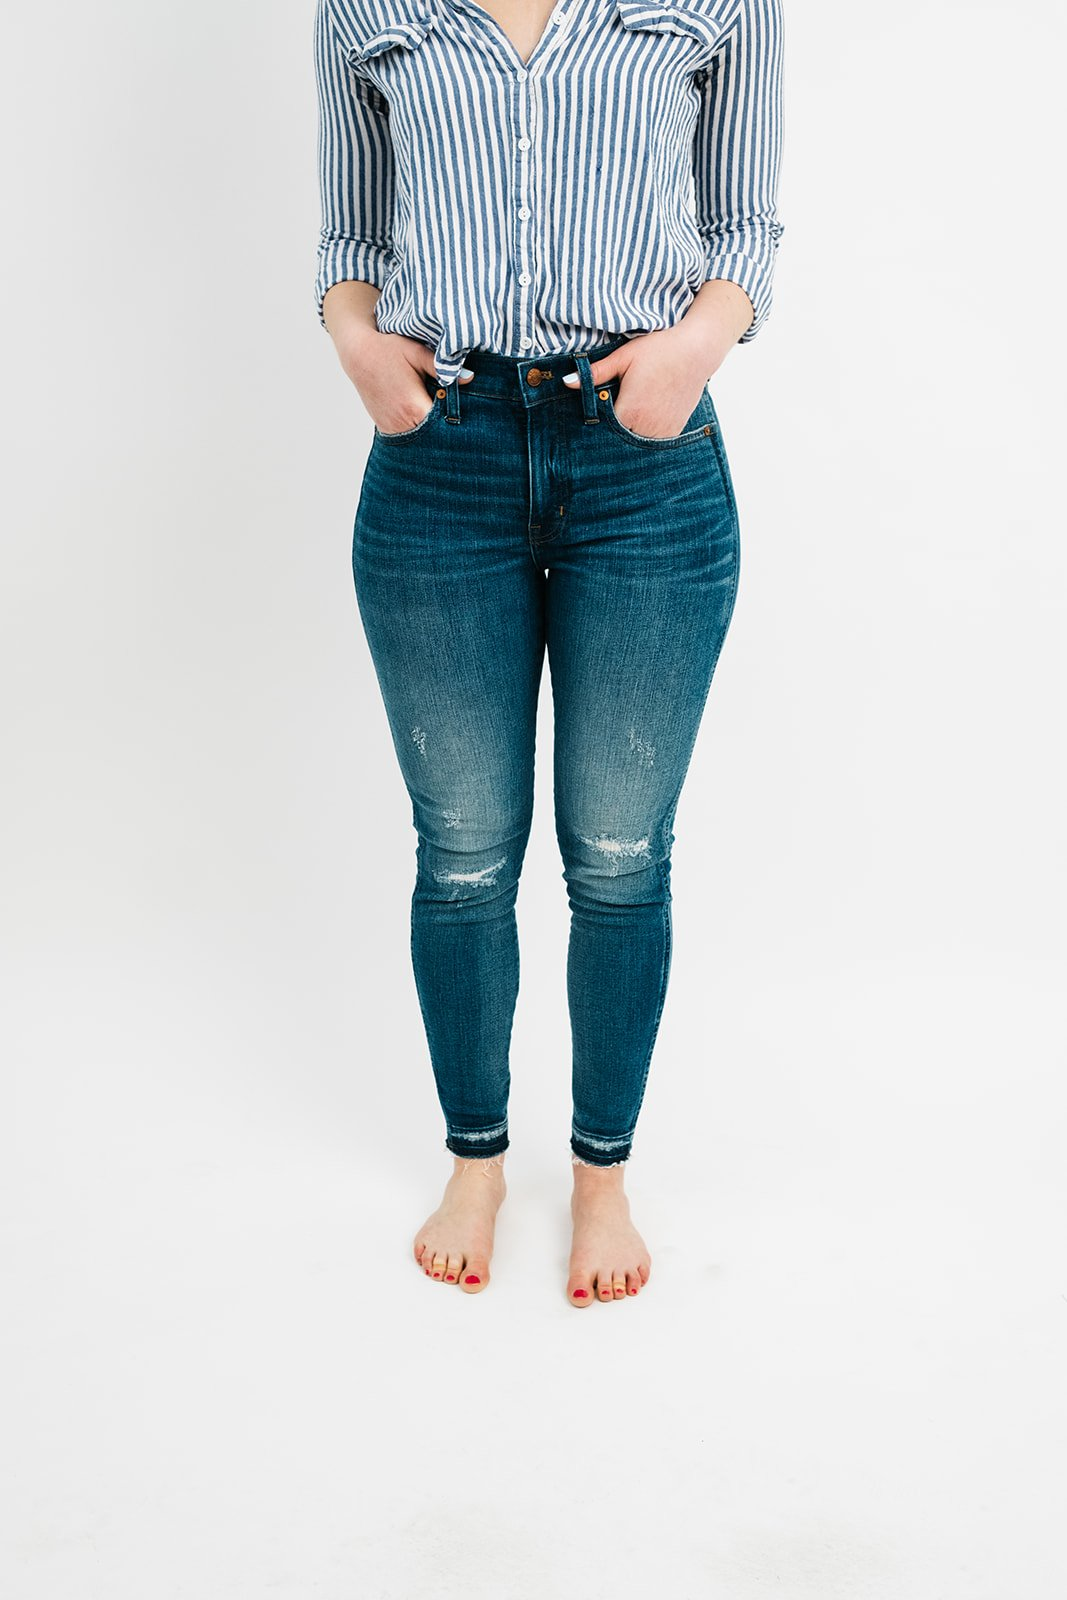 bottom half of a woman in jeans and a blue striped shirt